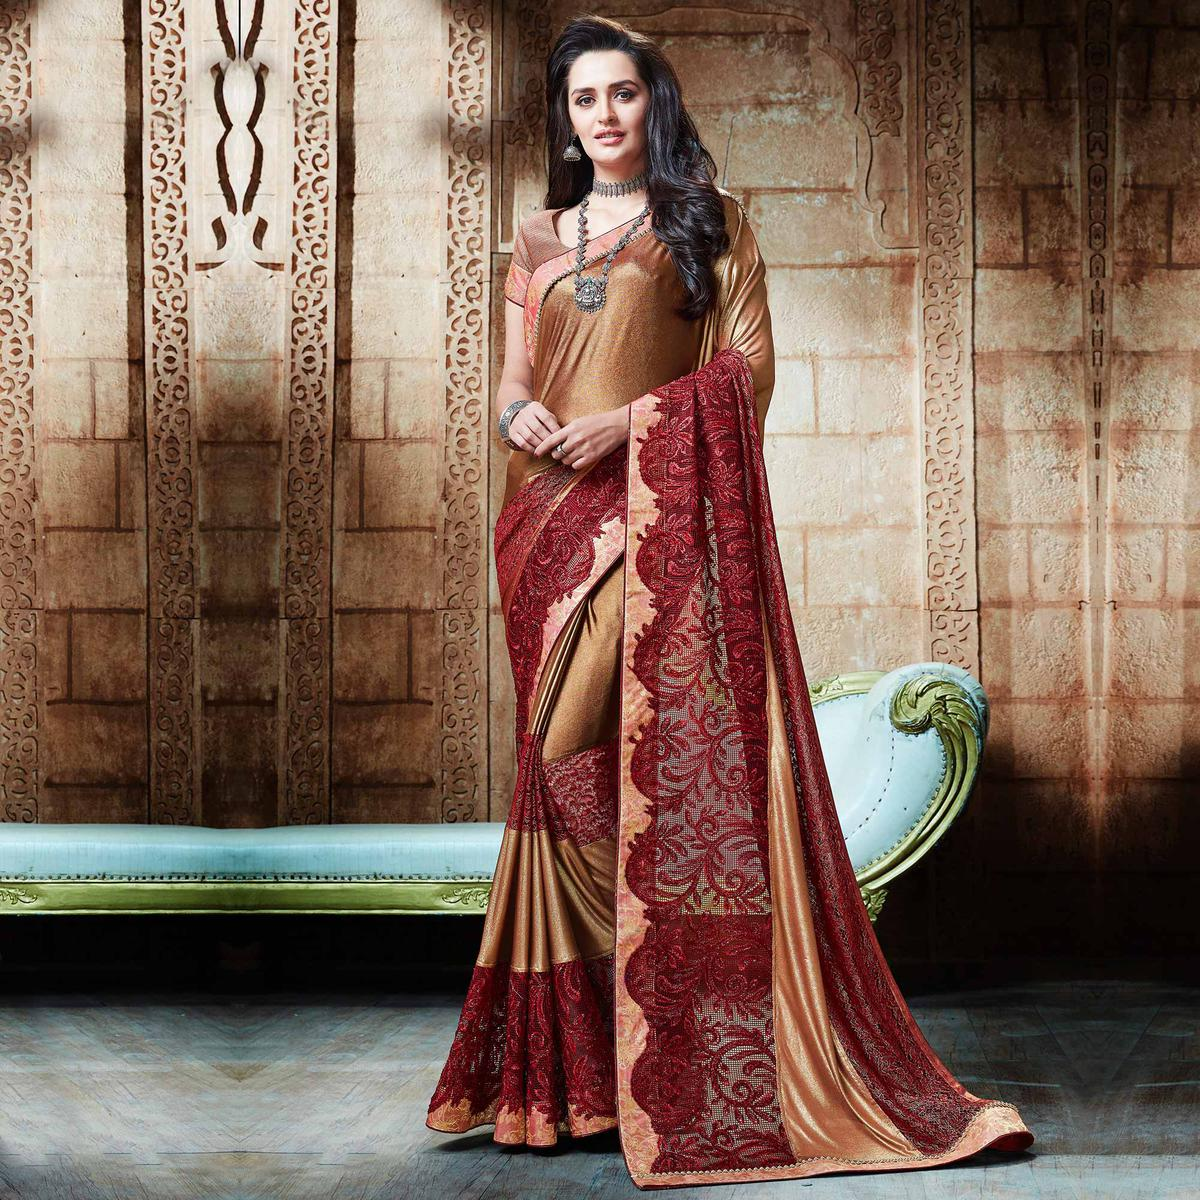 Stunning Golden - Maroon Embroidered Designer Partywear Saree